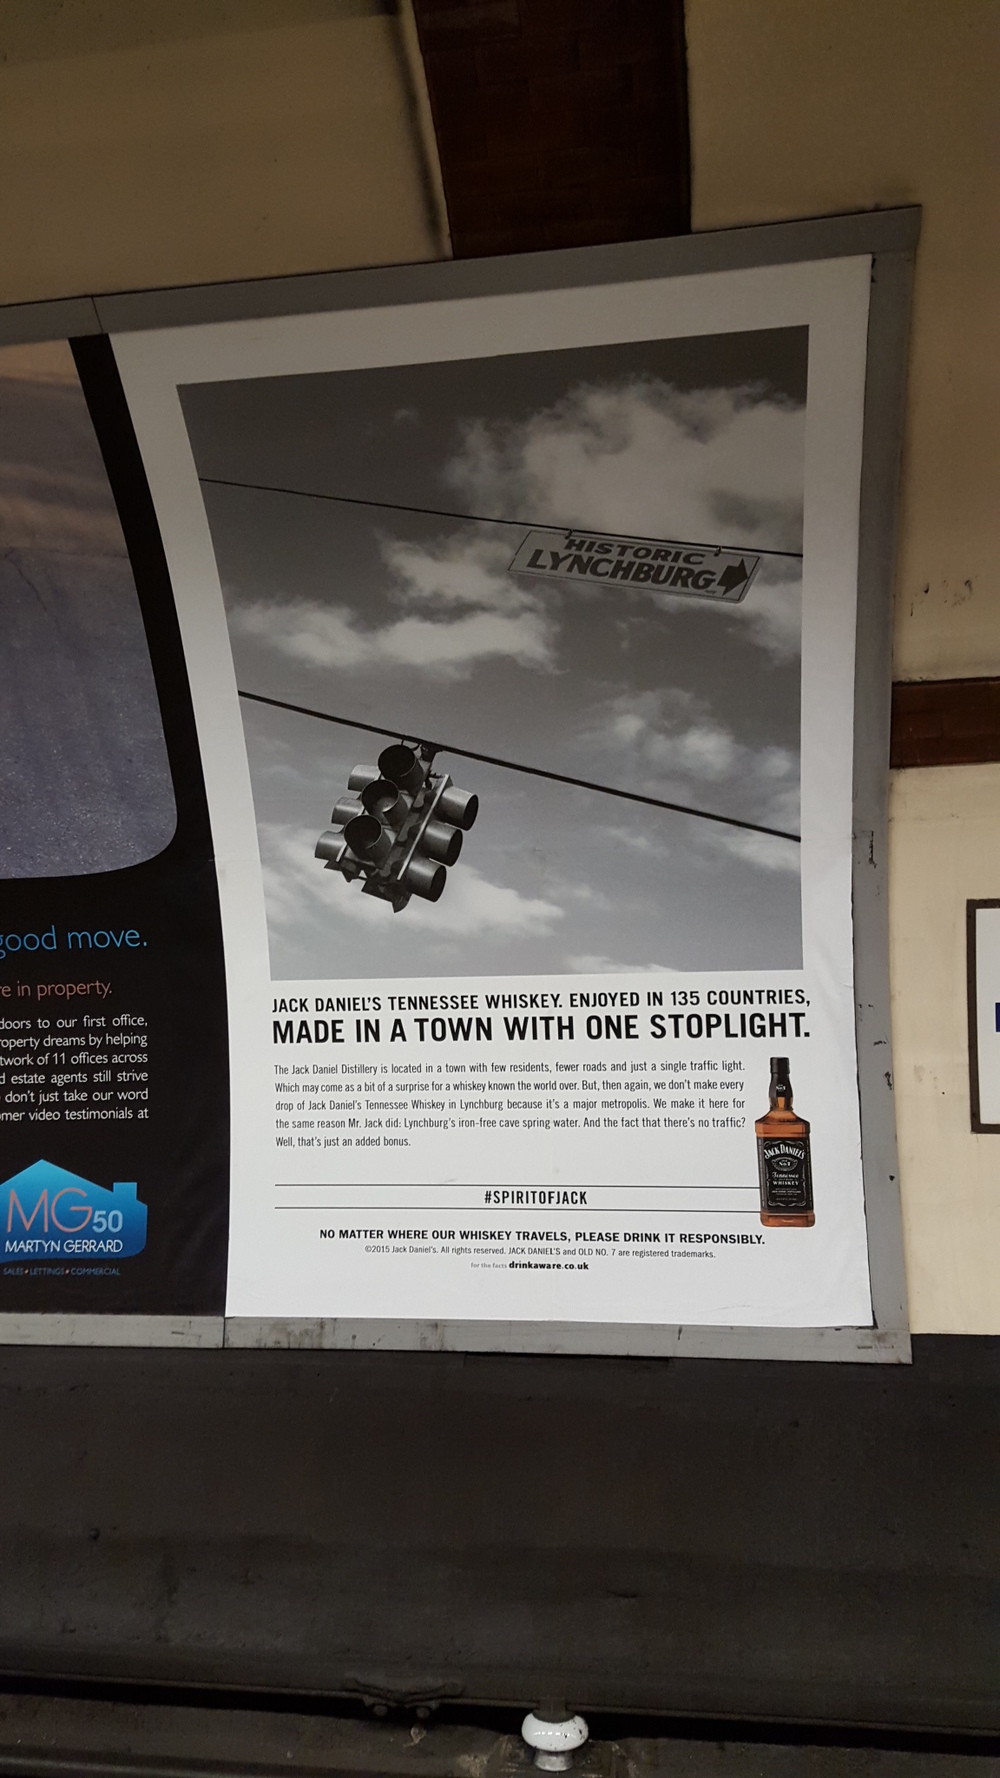 Photo of print ad in London Underground found  here